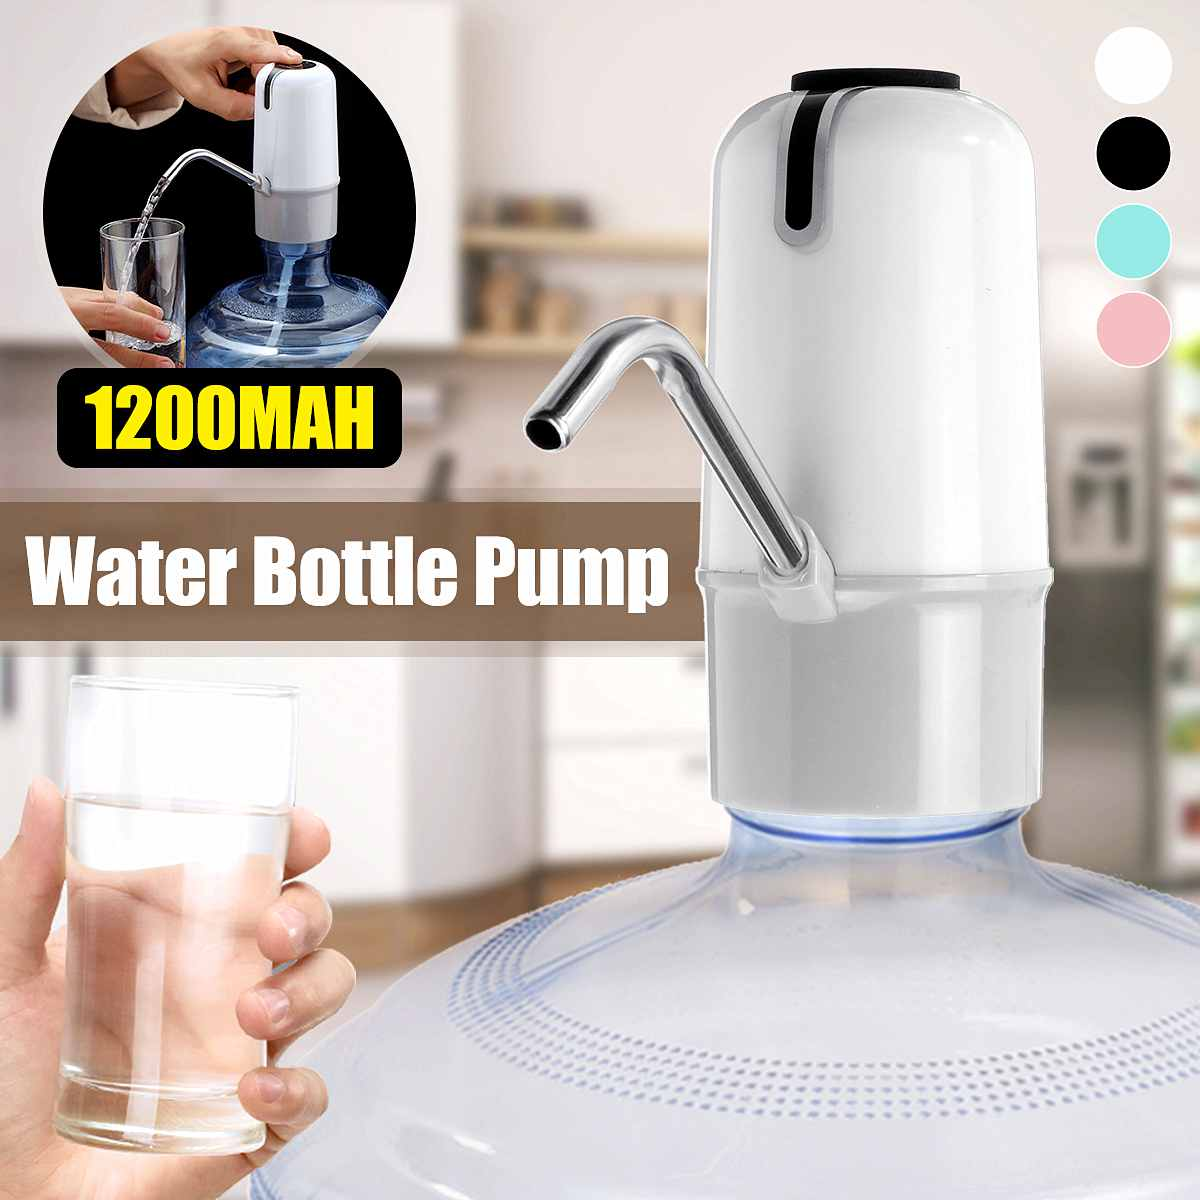 Water Bottle Pump USB Charging Wireless Automatic Drinking Water Pump Portable Electric Water Dispenser Water Bottle Pump Tools